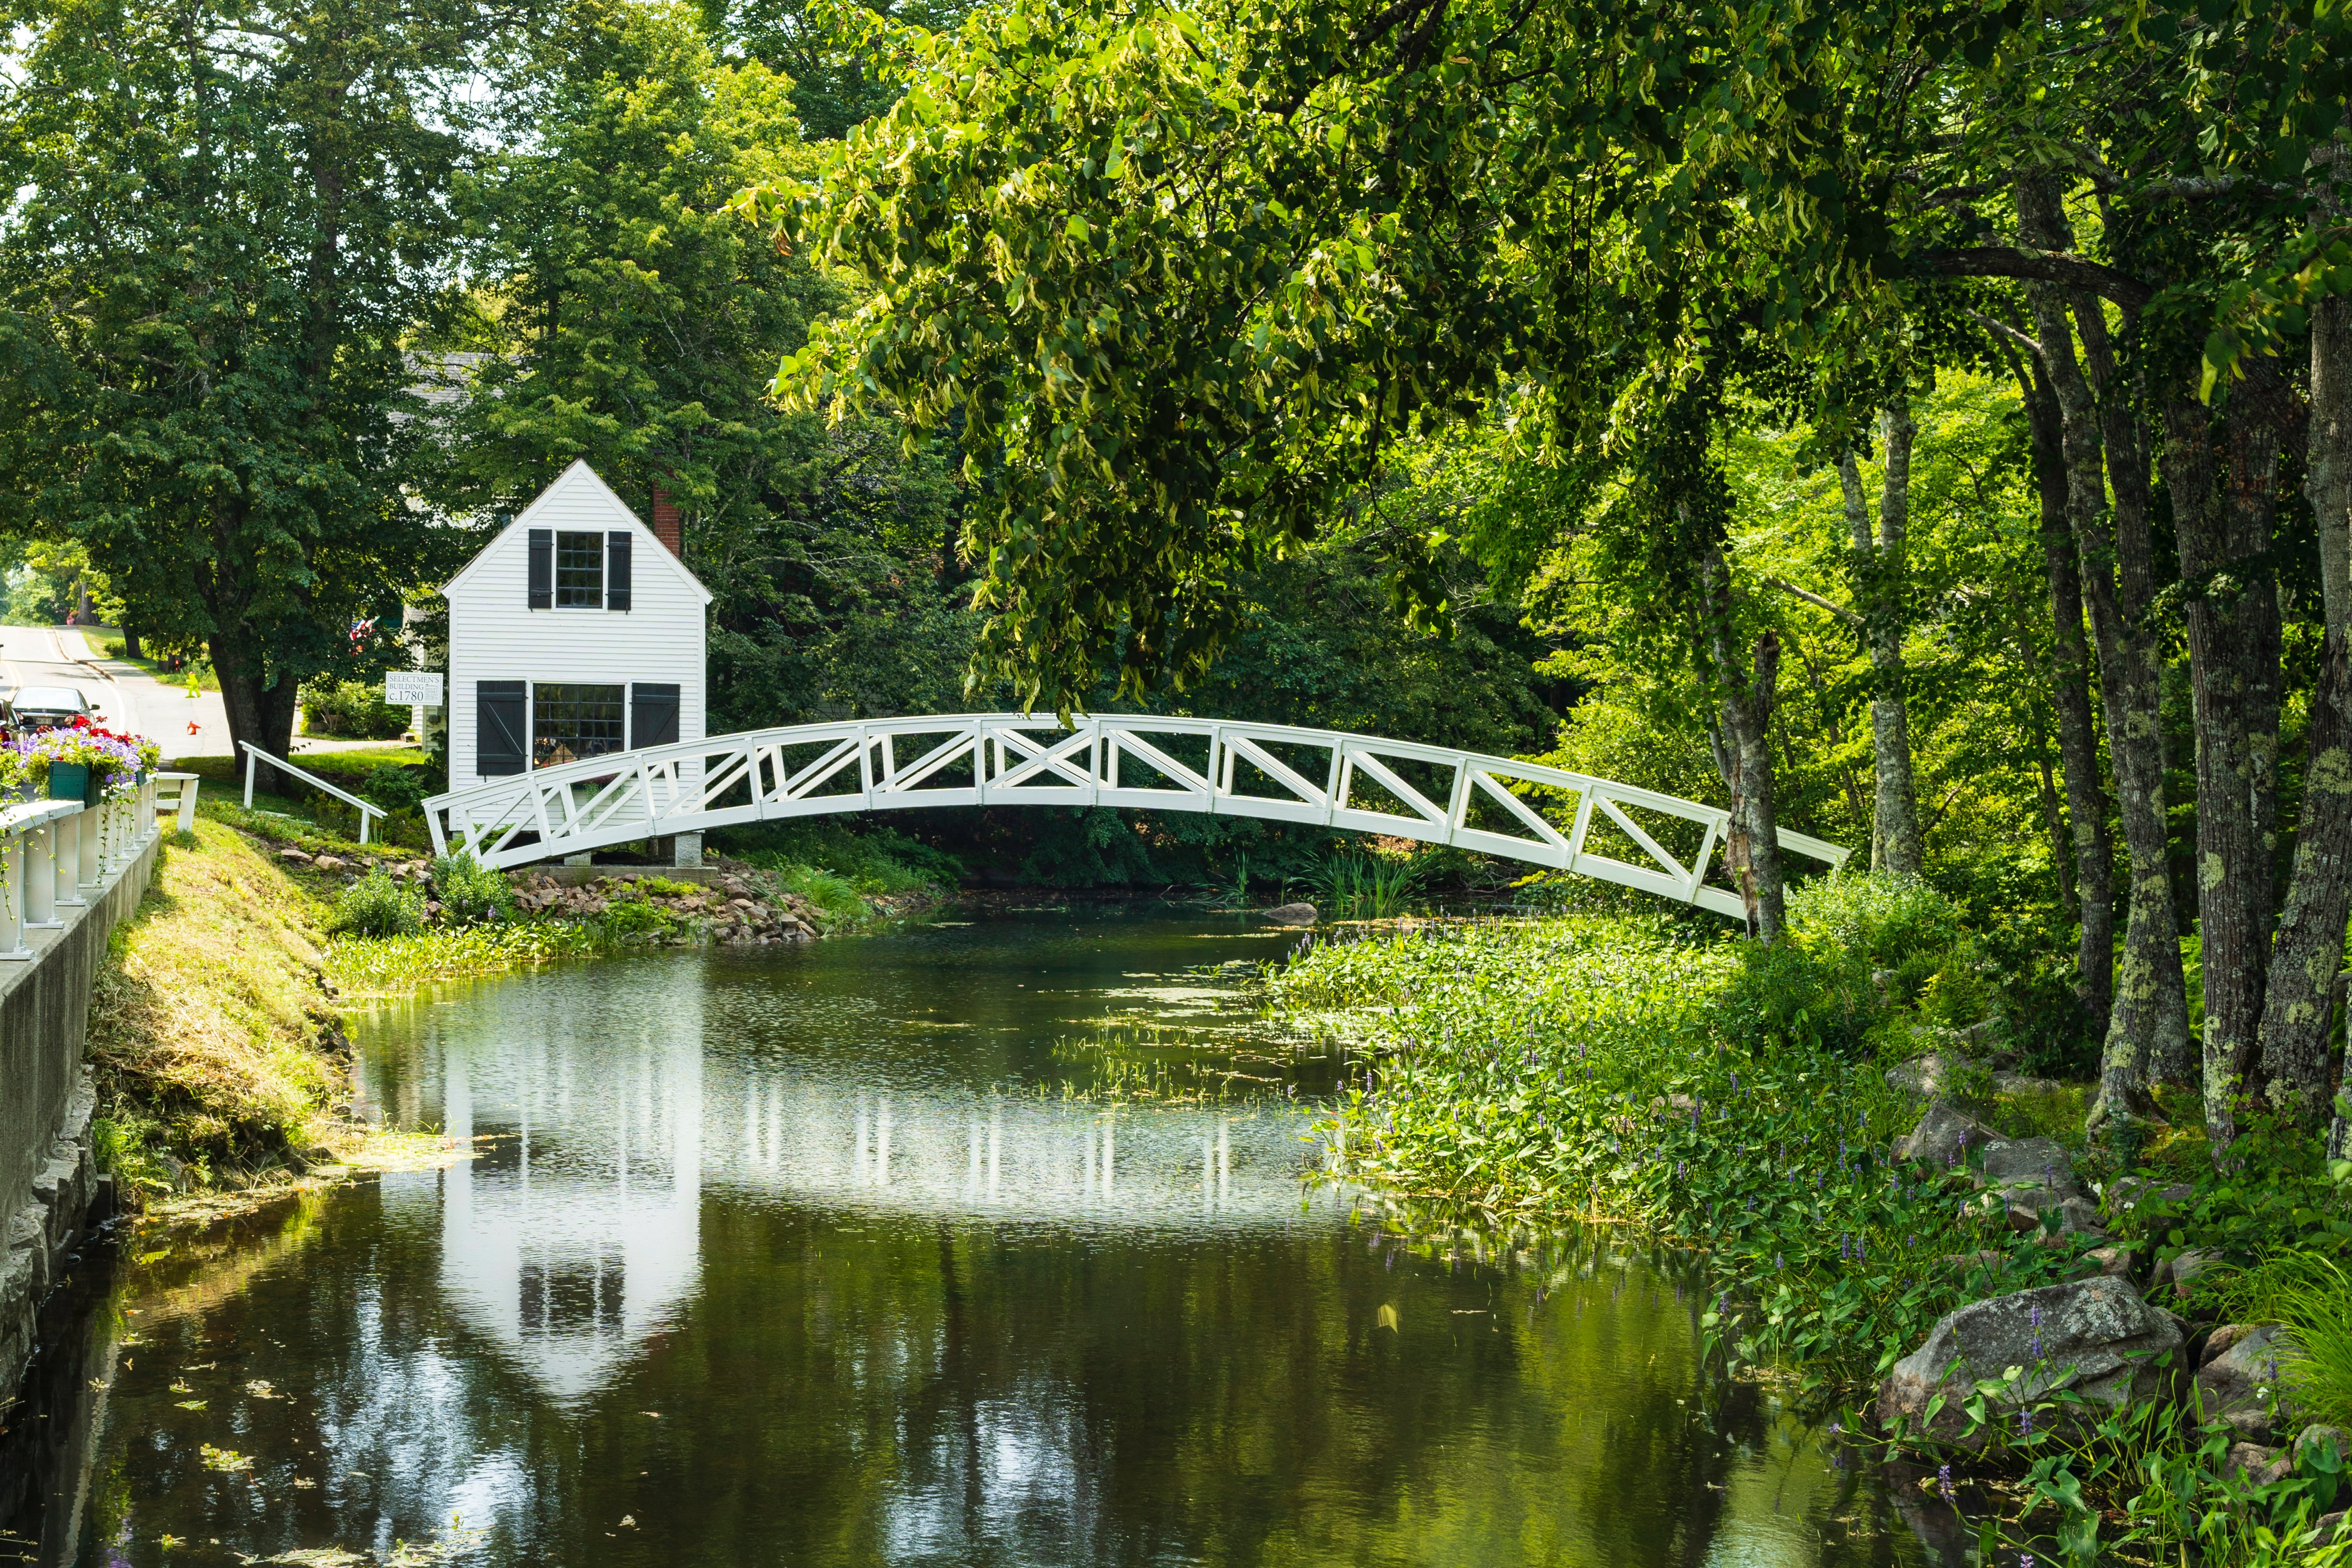 A white bridge arcing over a tranquil stream.